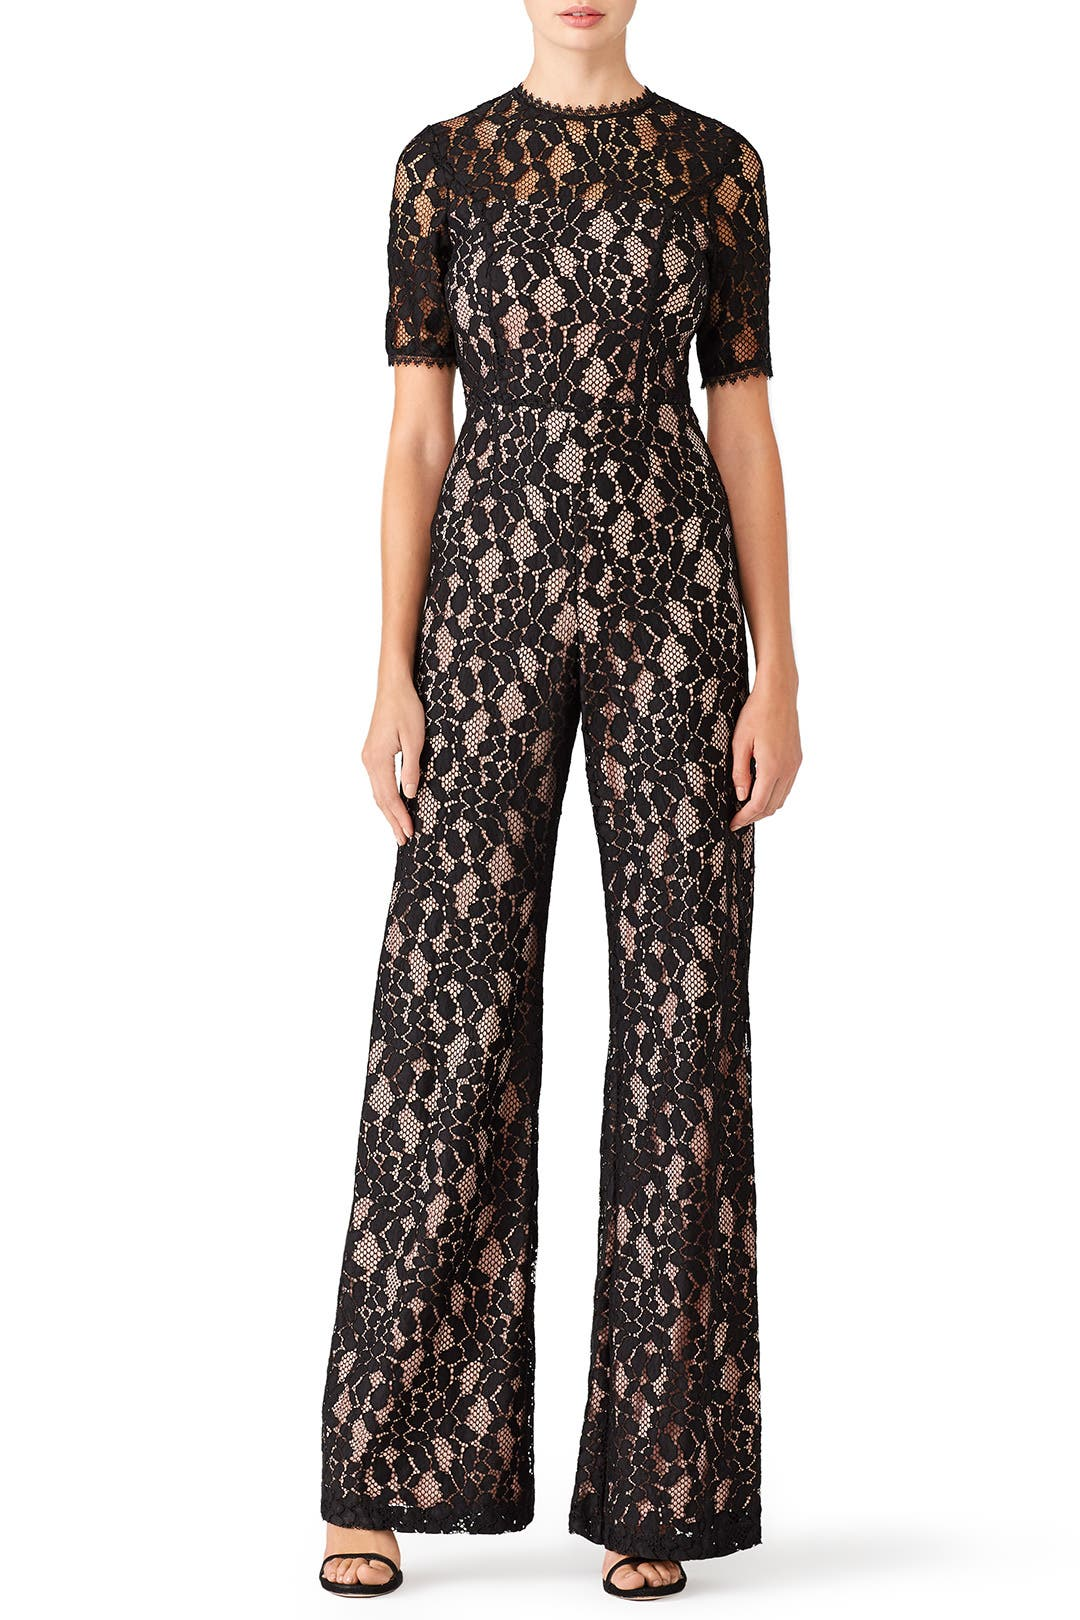 f5f186e94b Janus Lace Jumpsuit by Alexis for  70 -  85